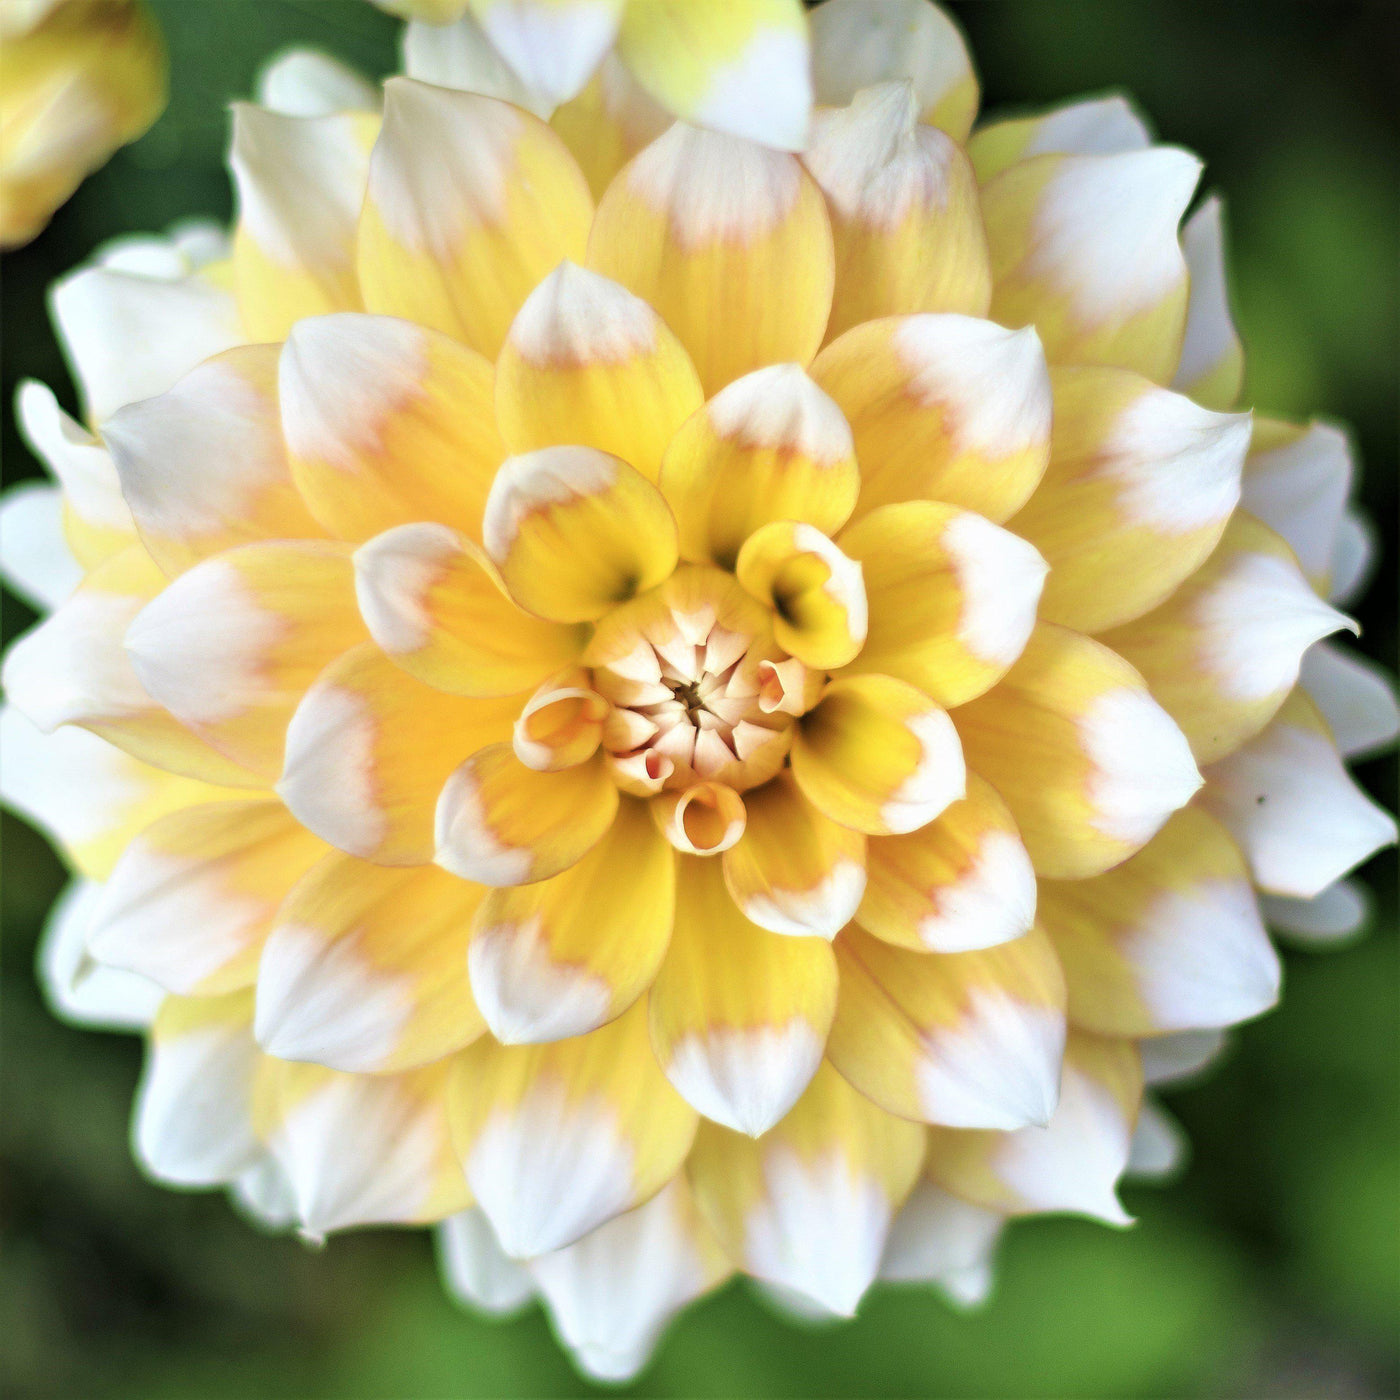 Dahlia Seattle & Dinner Plate Dahlia Seattle | Yellow and White Dinner Plate Dahlia ...